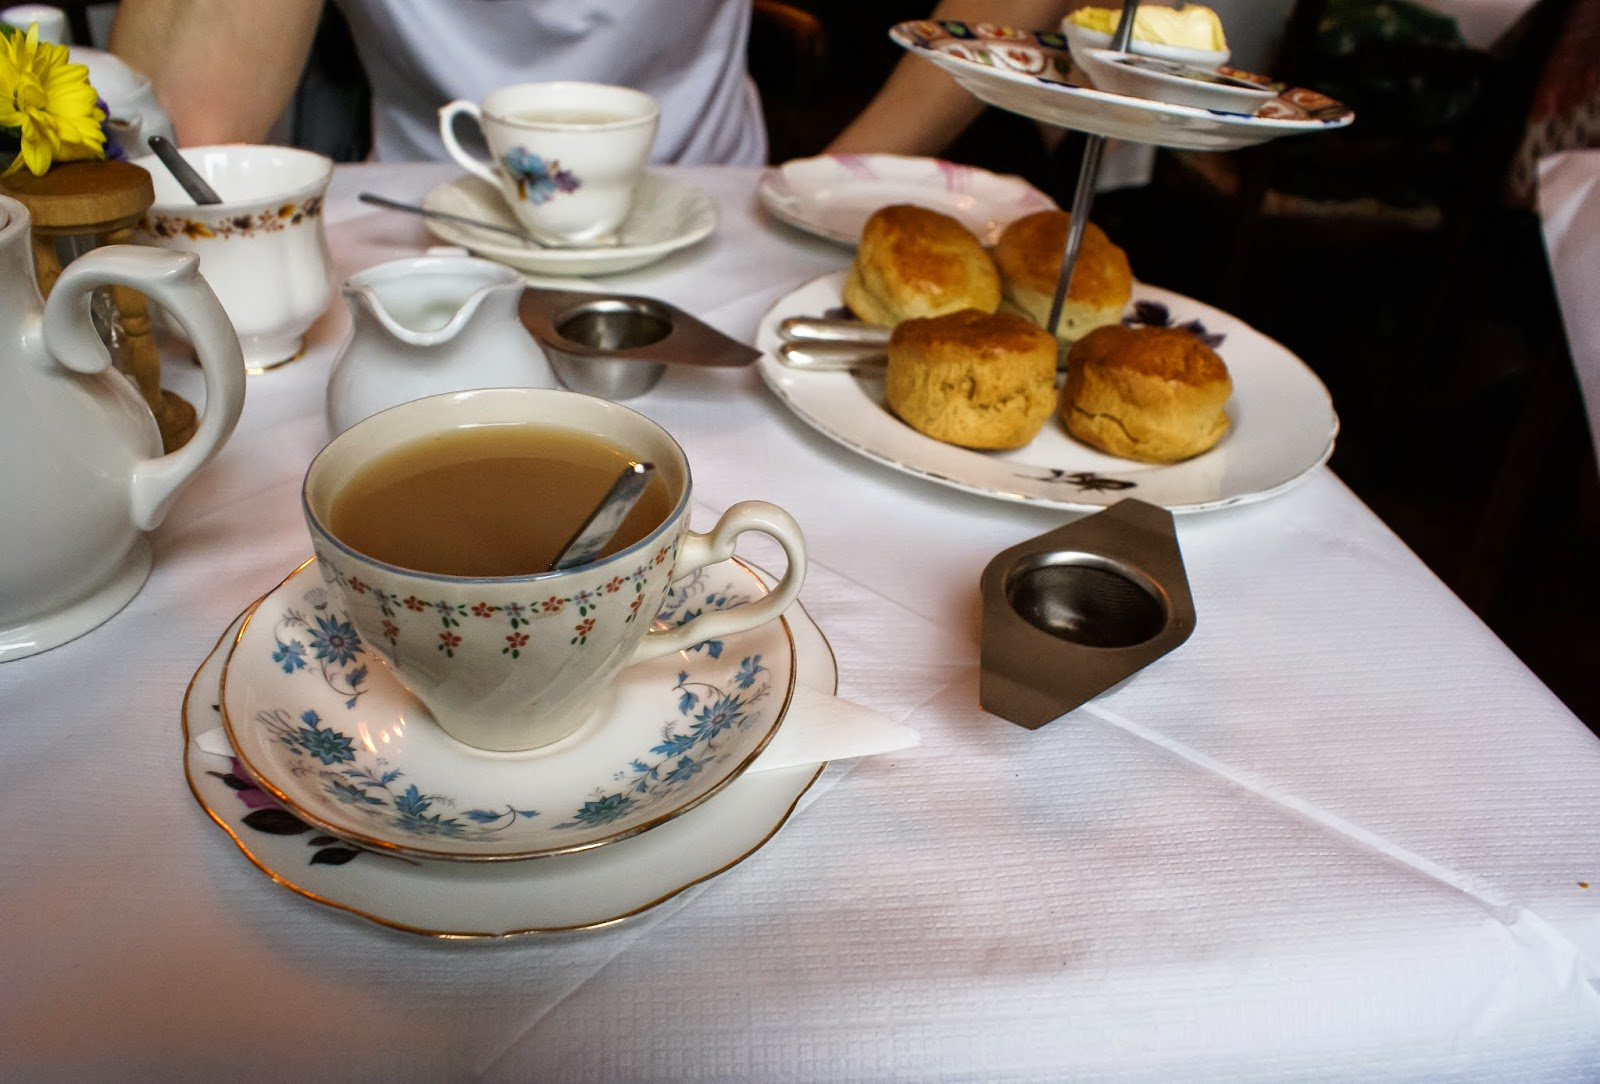 secret tea room soho london uk england britain